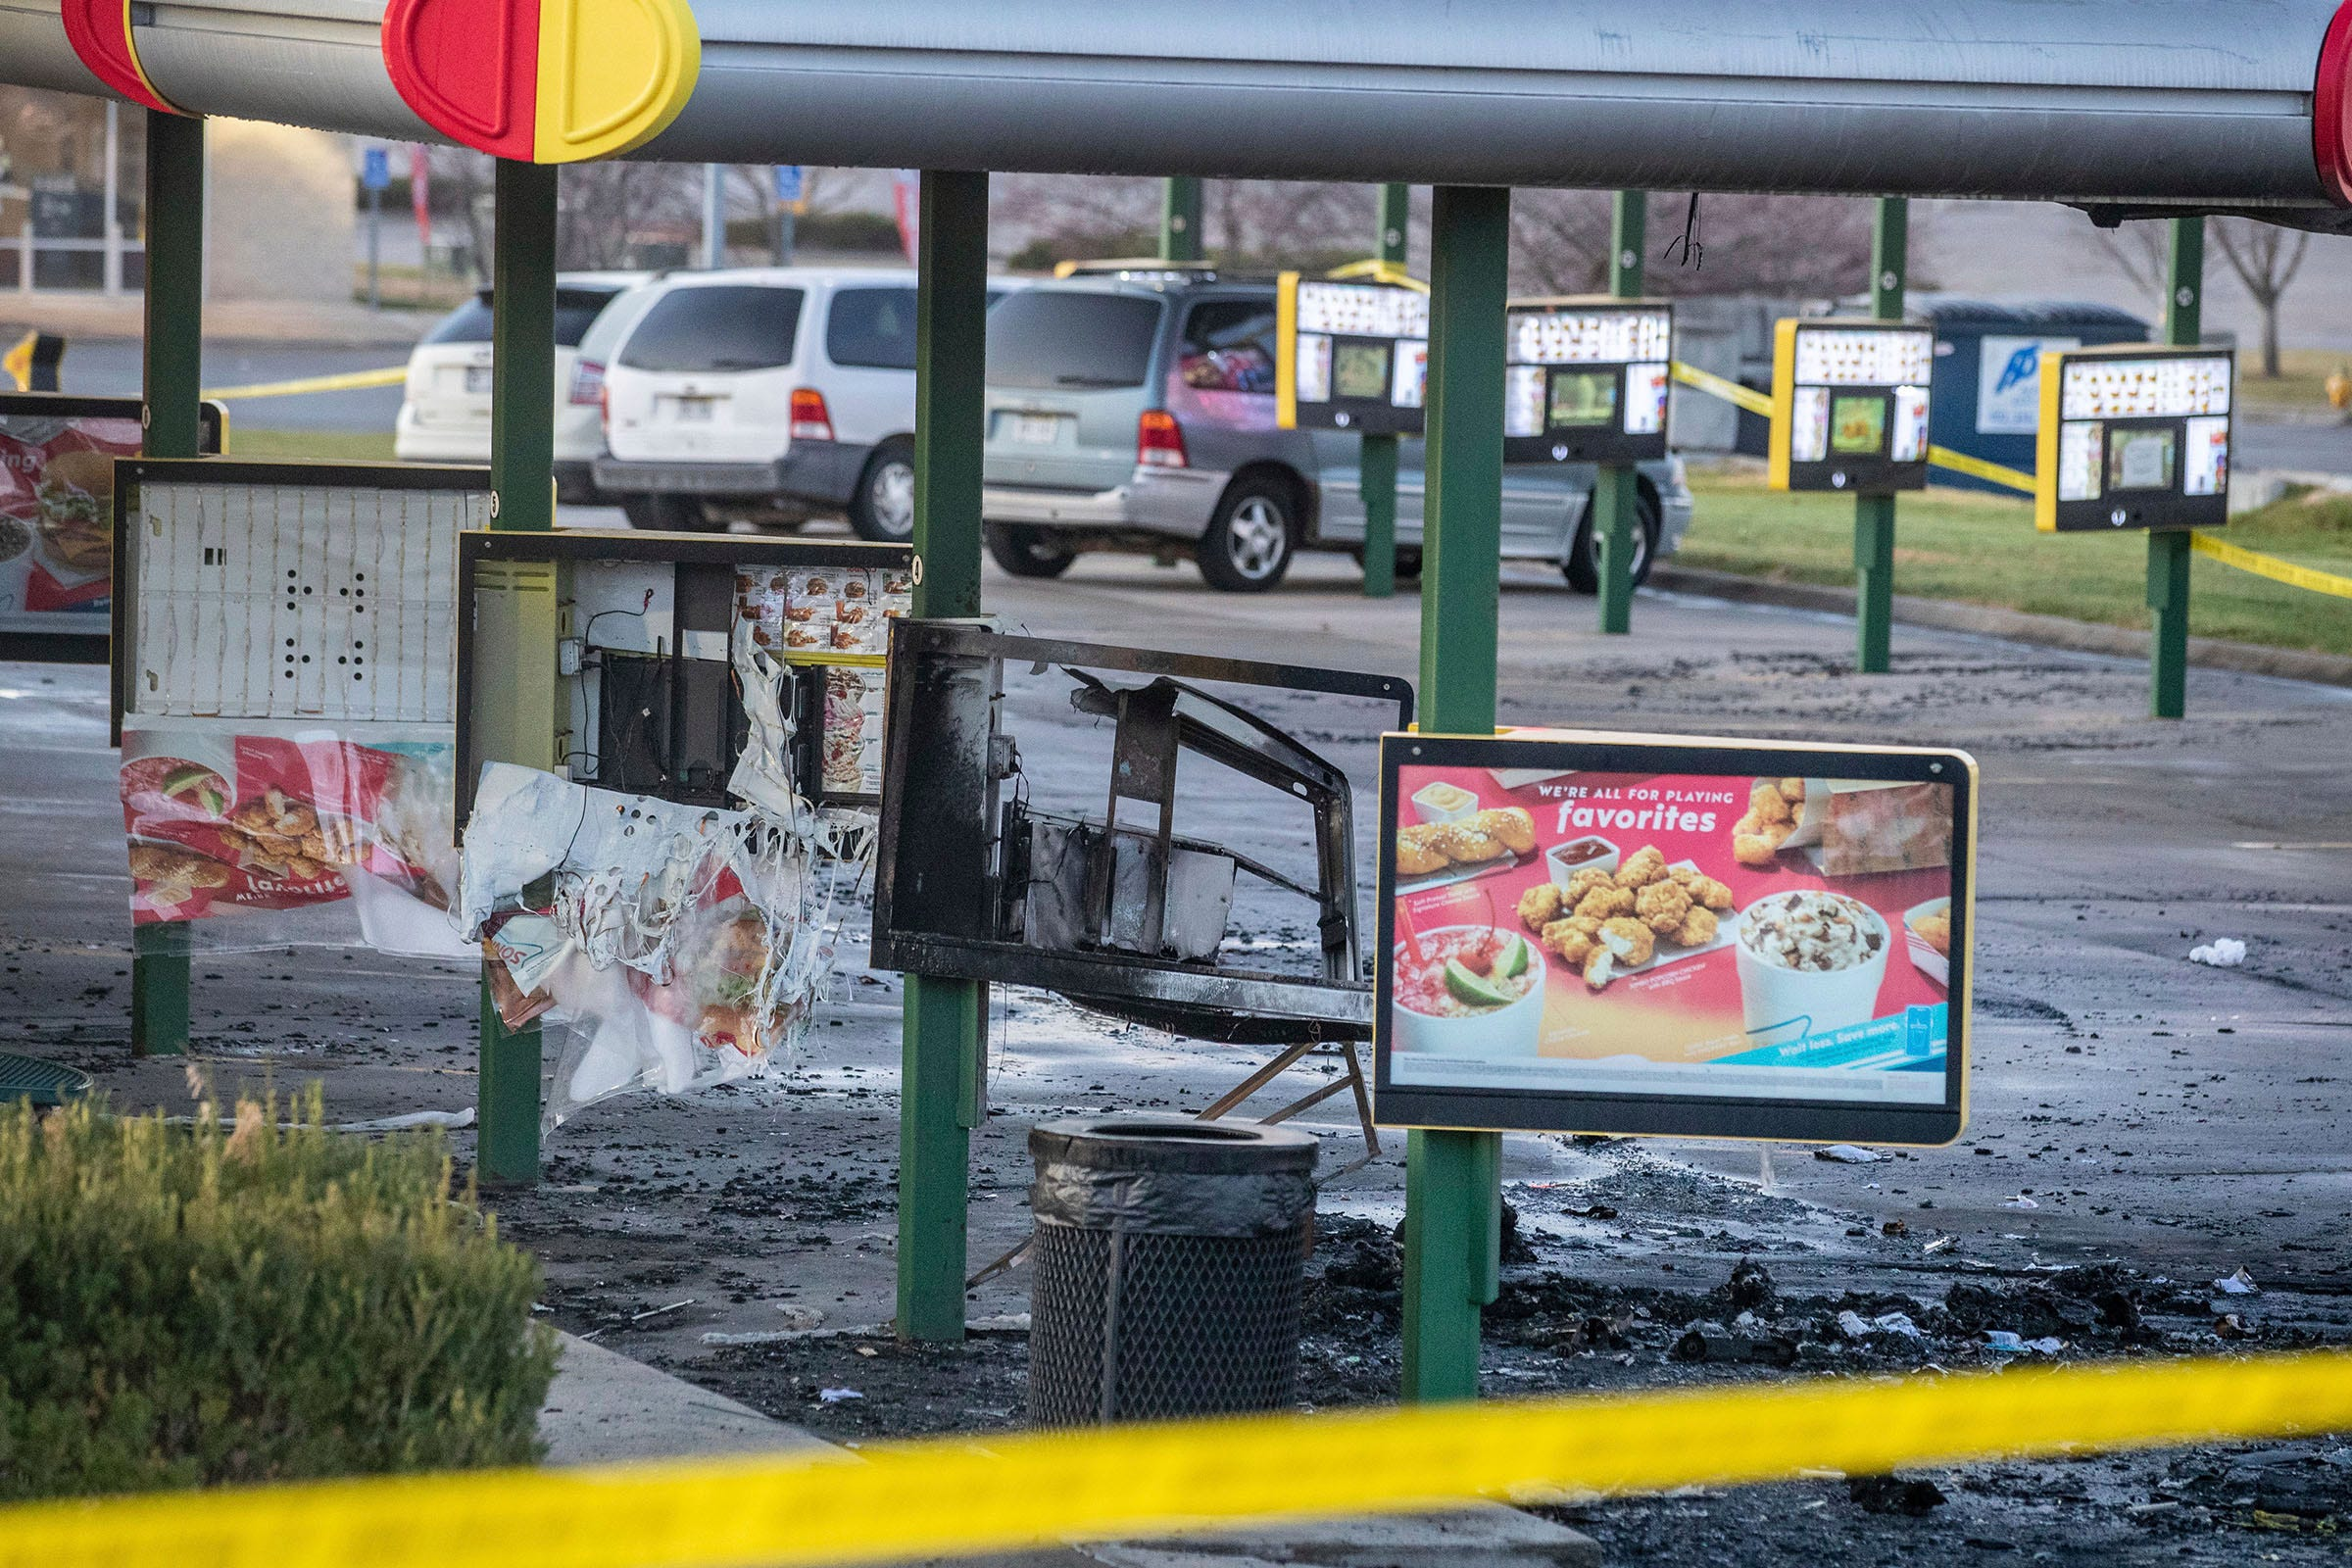 Nebraska man arrested for allegedly shooting 4 people, killing 2, at a Sonic Drive-In restaurant, police say